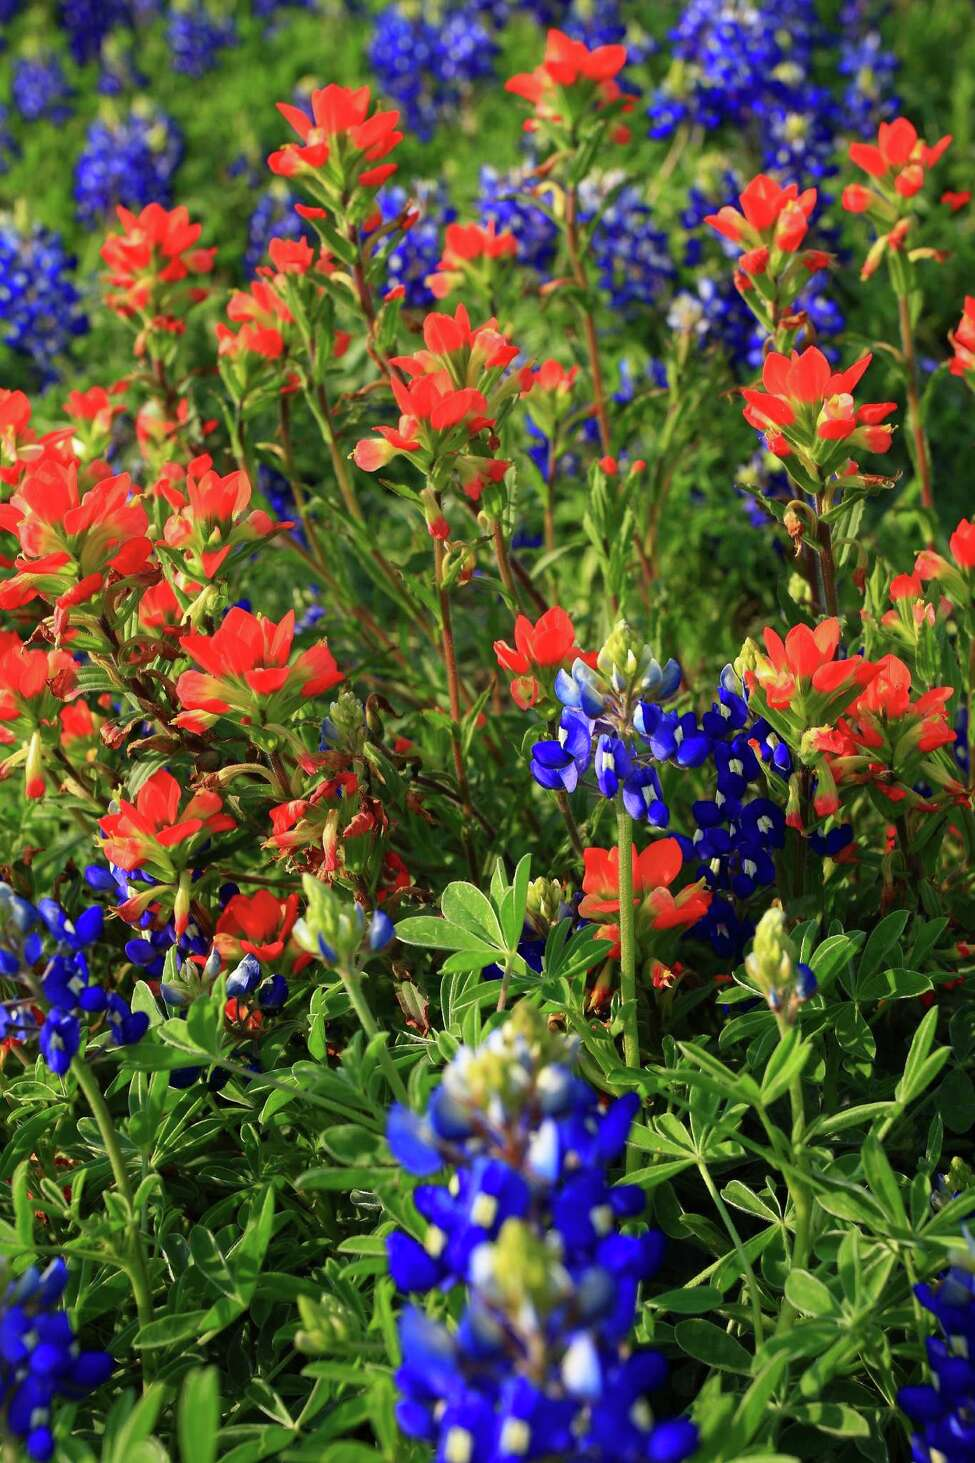 2. There are six different species of bluebonnets  And, they're all a little hard to pronounce if you're not wild about wildflowers: Lupinus subcarnosus, Lupinus texensis, Lupinus havardii, Lupinus concinnus, Lupinus plattensis and Lupinus perennis.